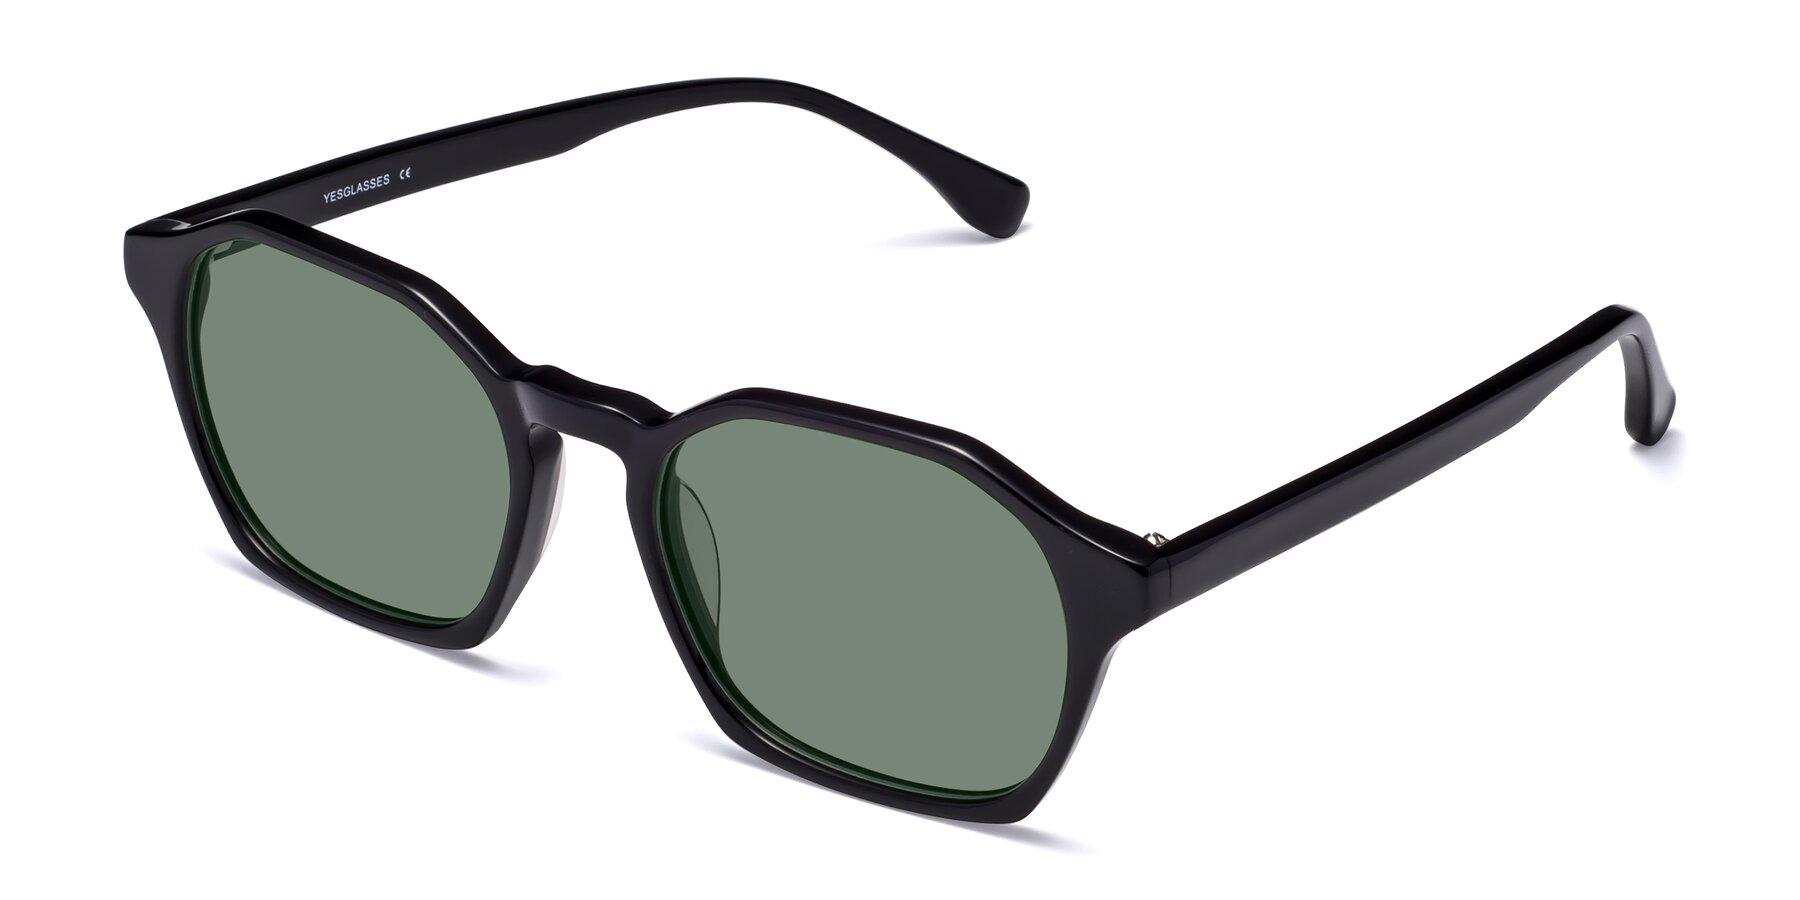 Angle of Stoltz in Black with Medium Green Tinted Lenses